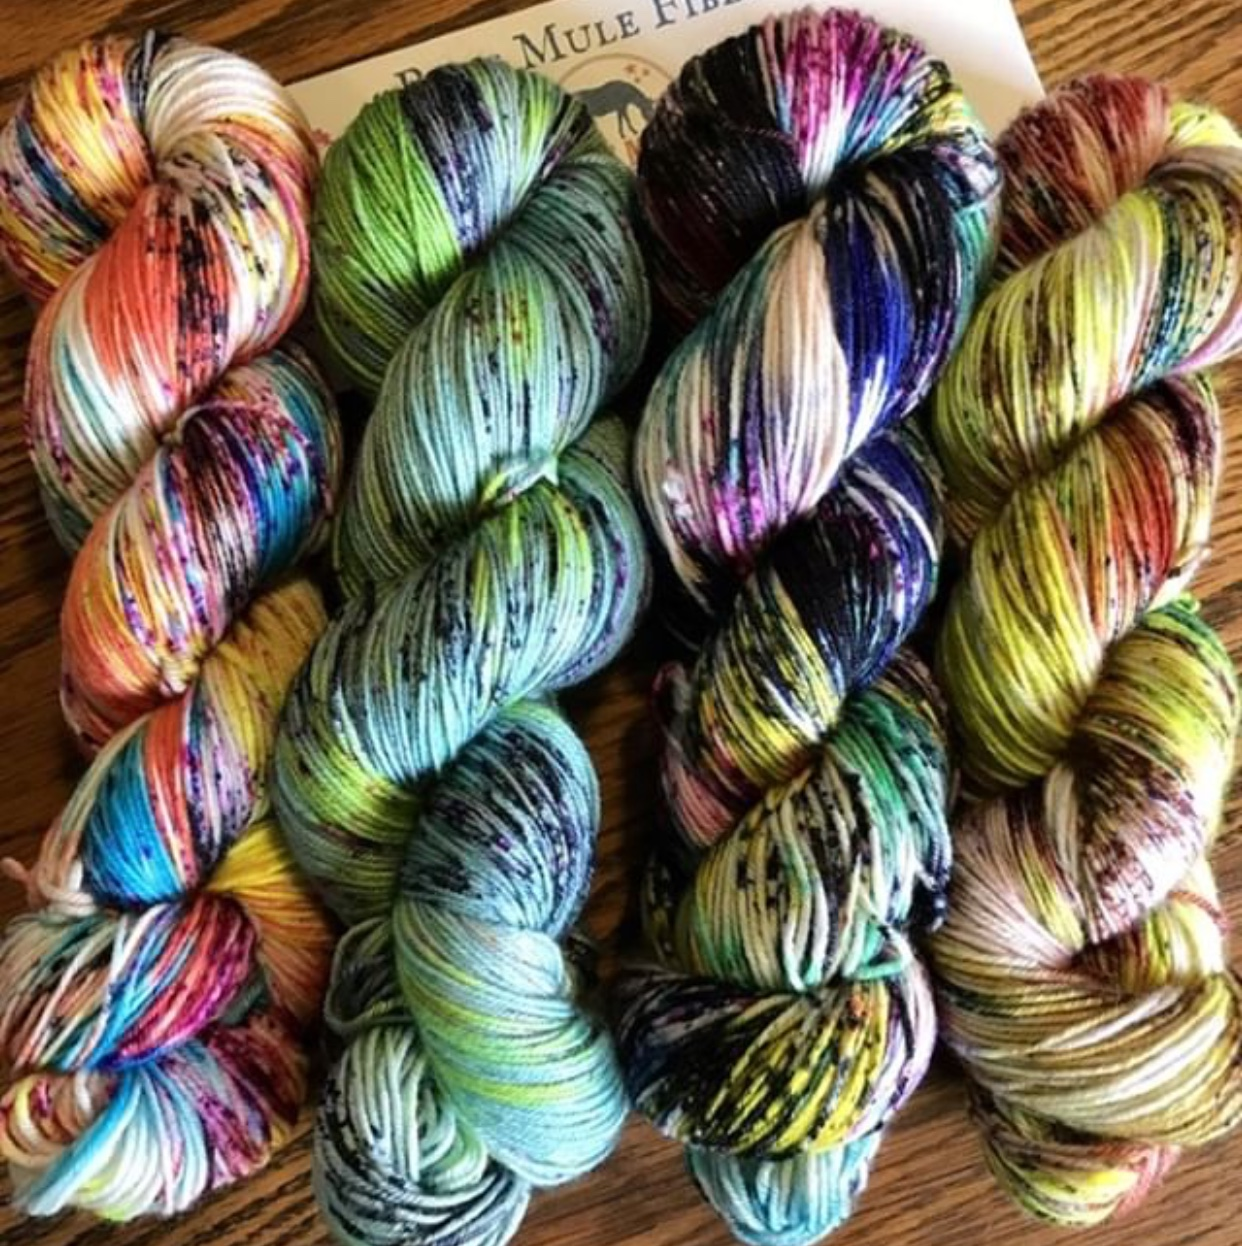 Beth and Ashley of Blue Mule Farm's gorgeous layout of their yarns